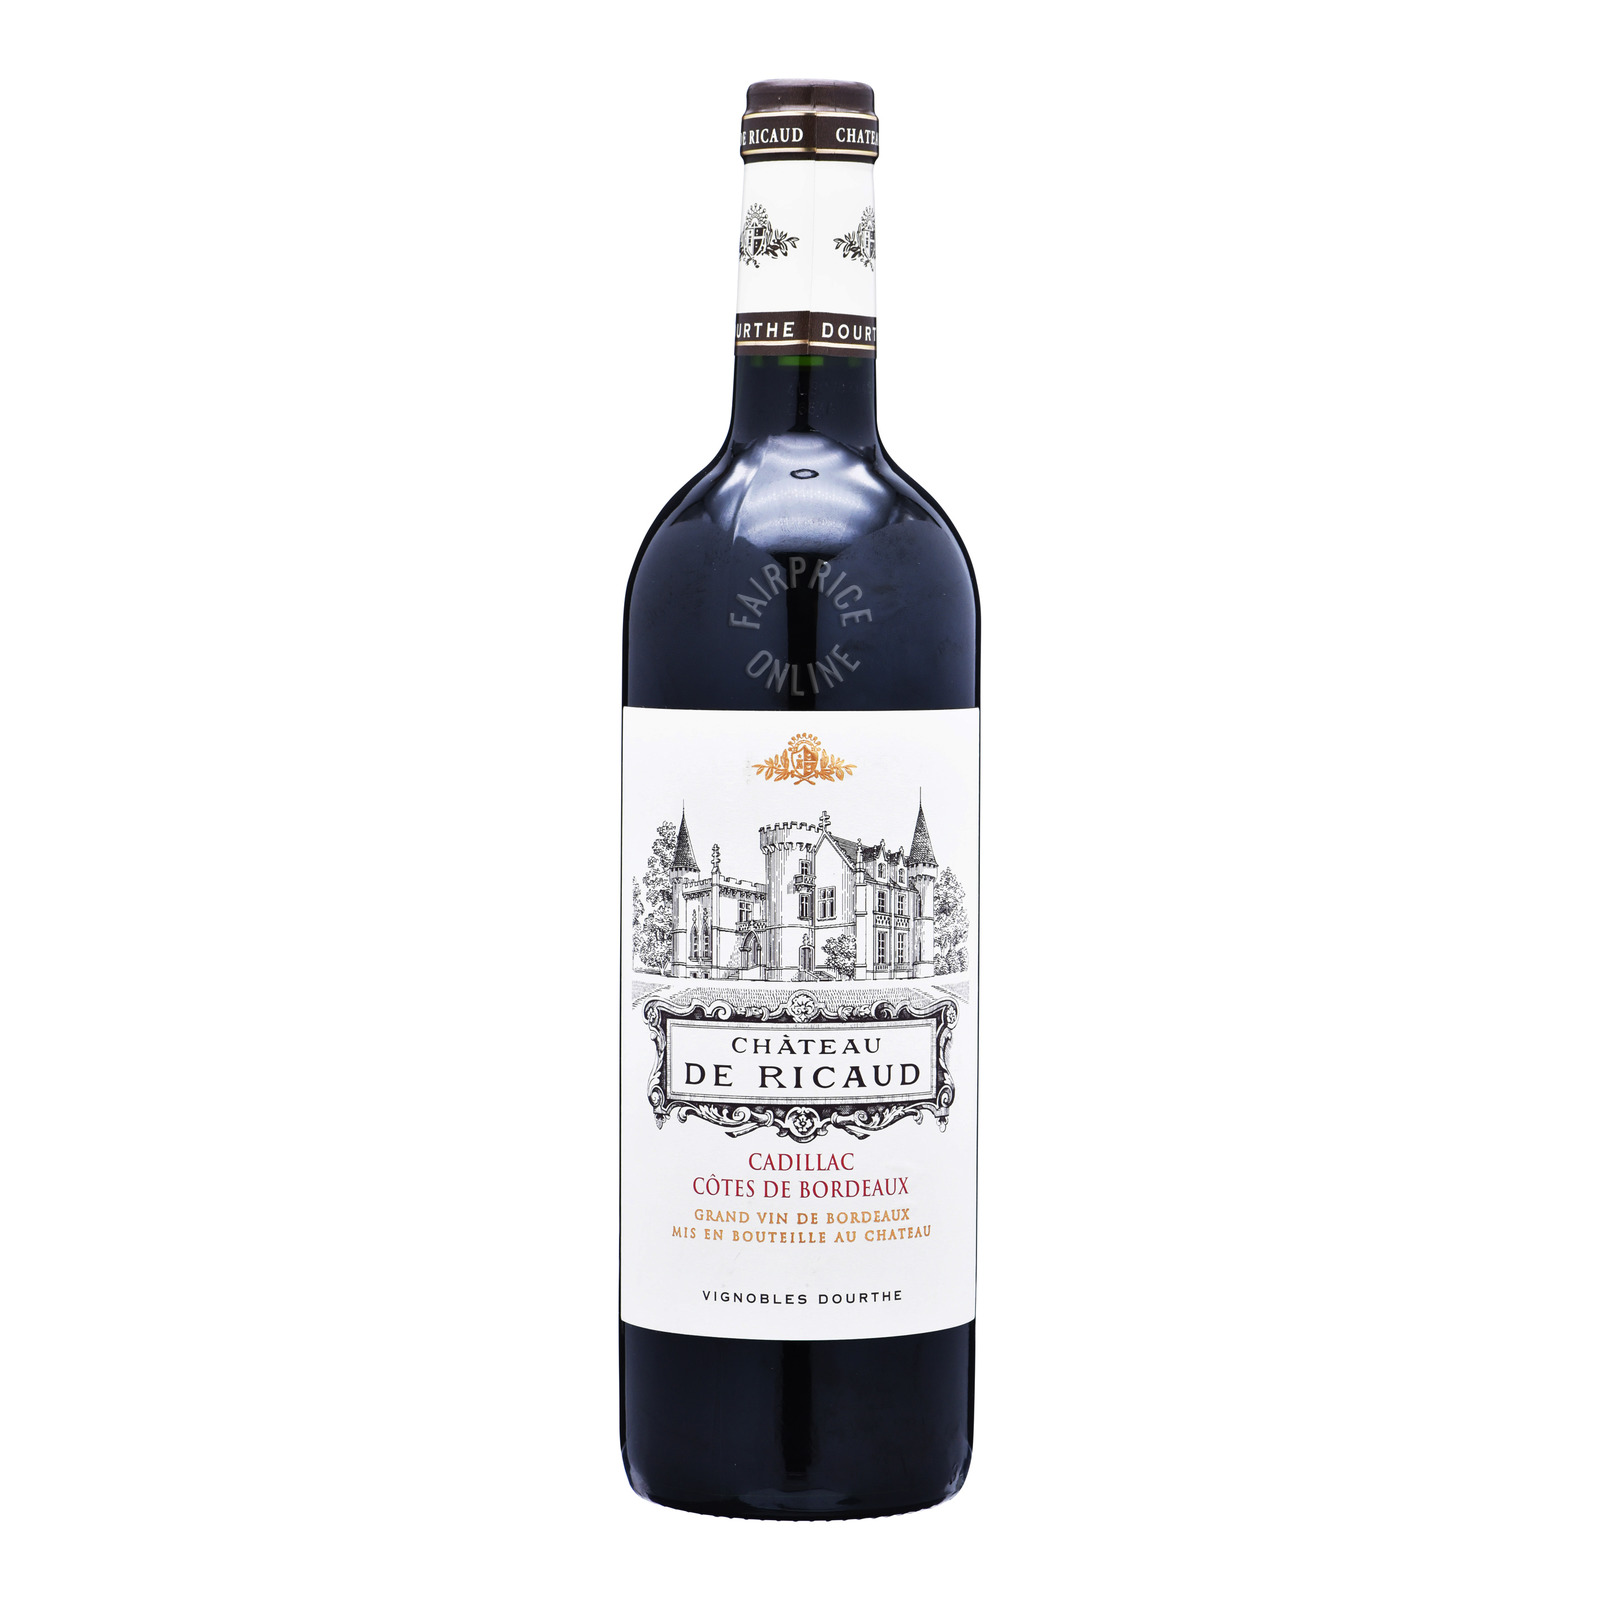 Chateau De Ricaud Red Wine - Cadillac